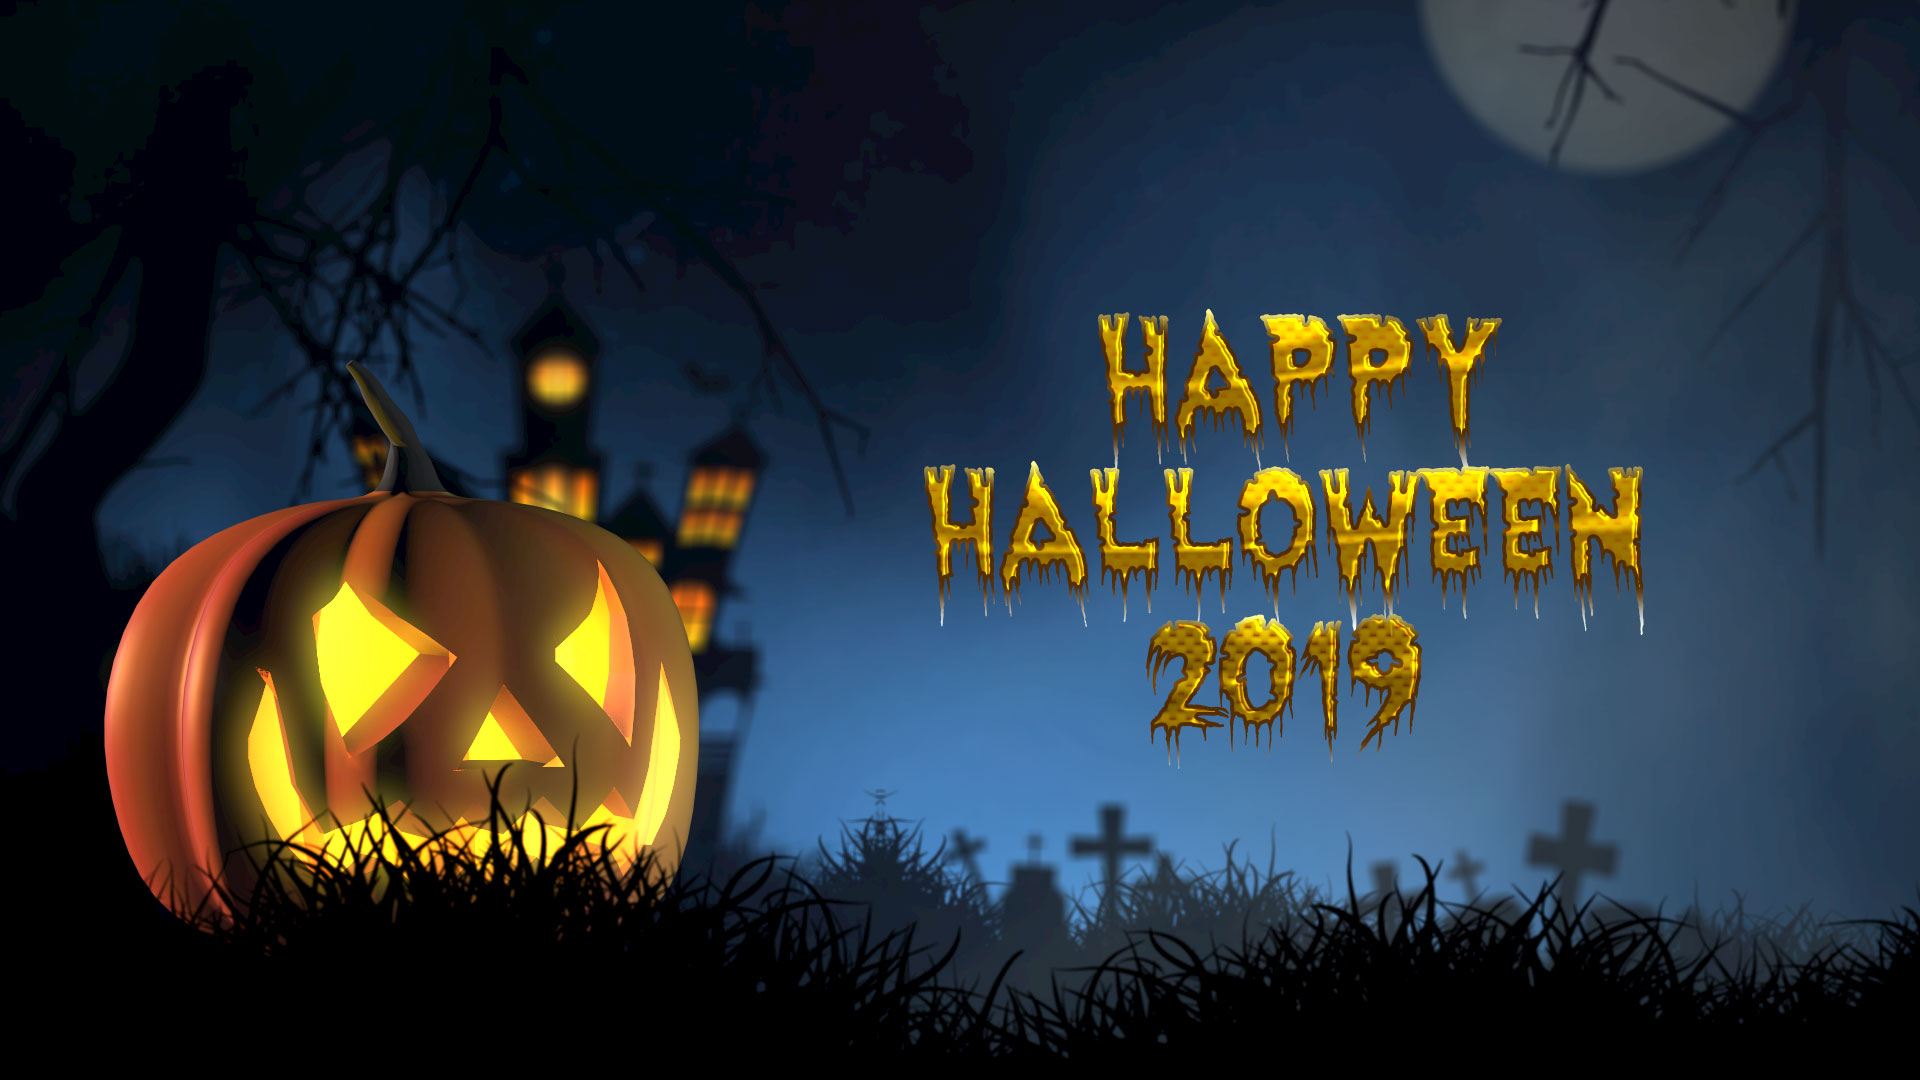 50+ Scary Halloween 2019 Wallpapers HD, Backgrounds